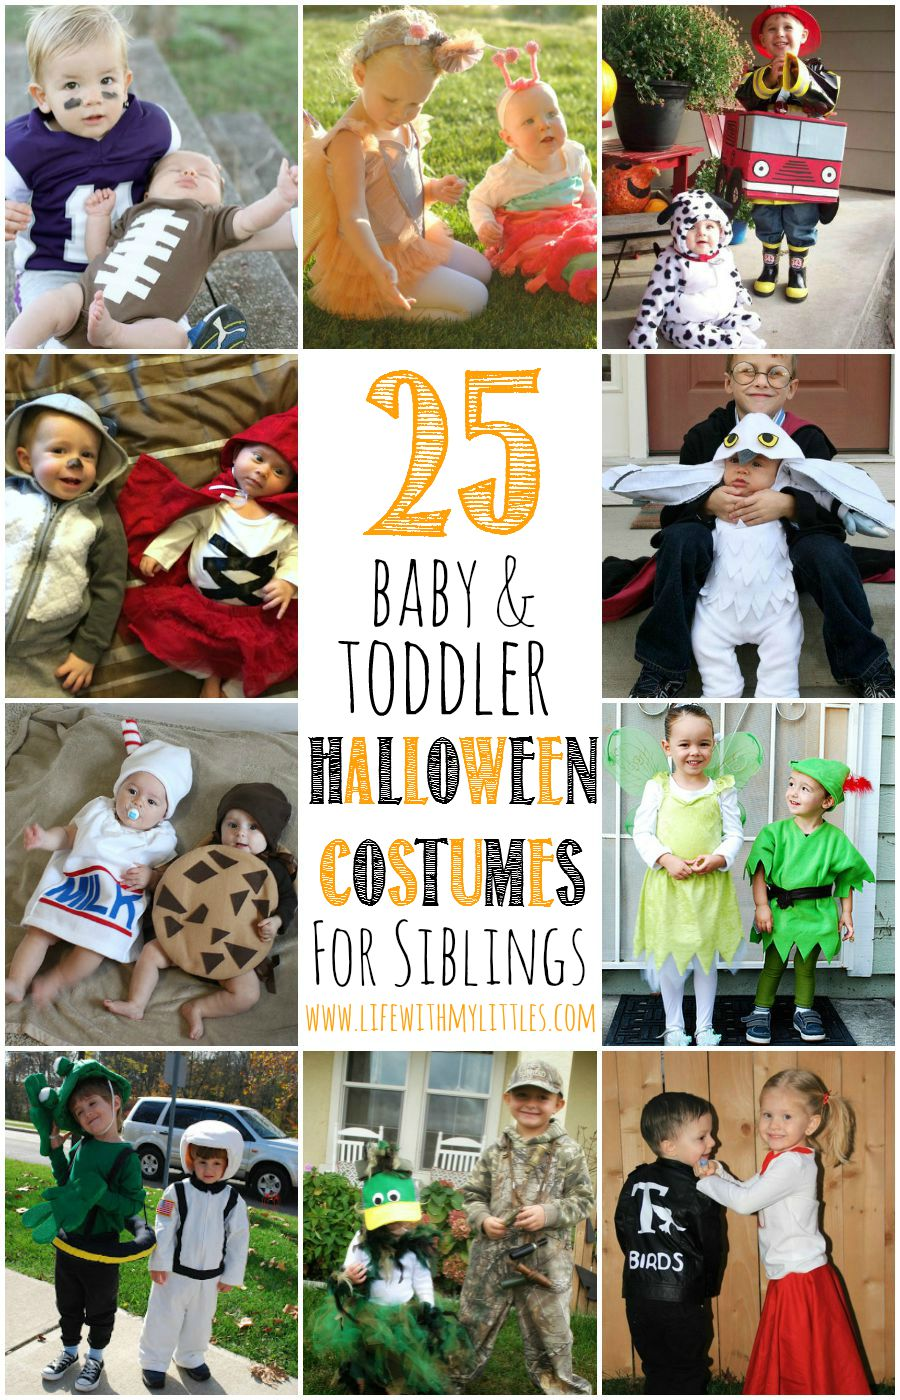 baby-and-toddler-halloween-costumes-for-siblings